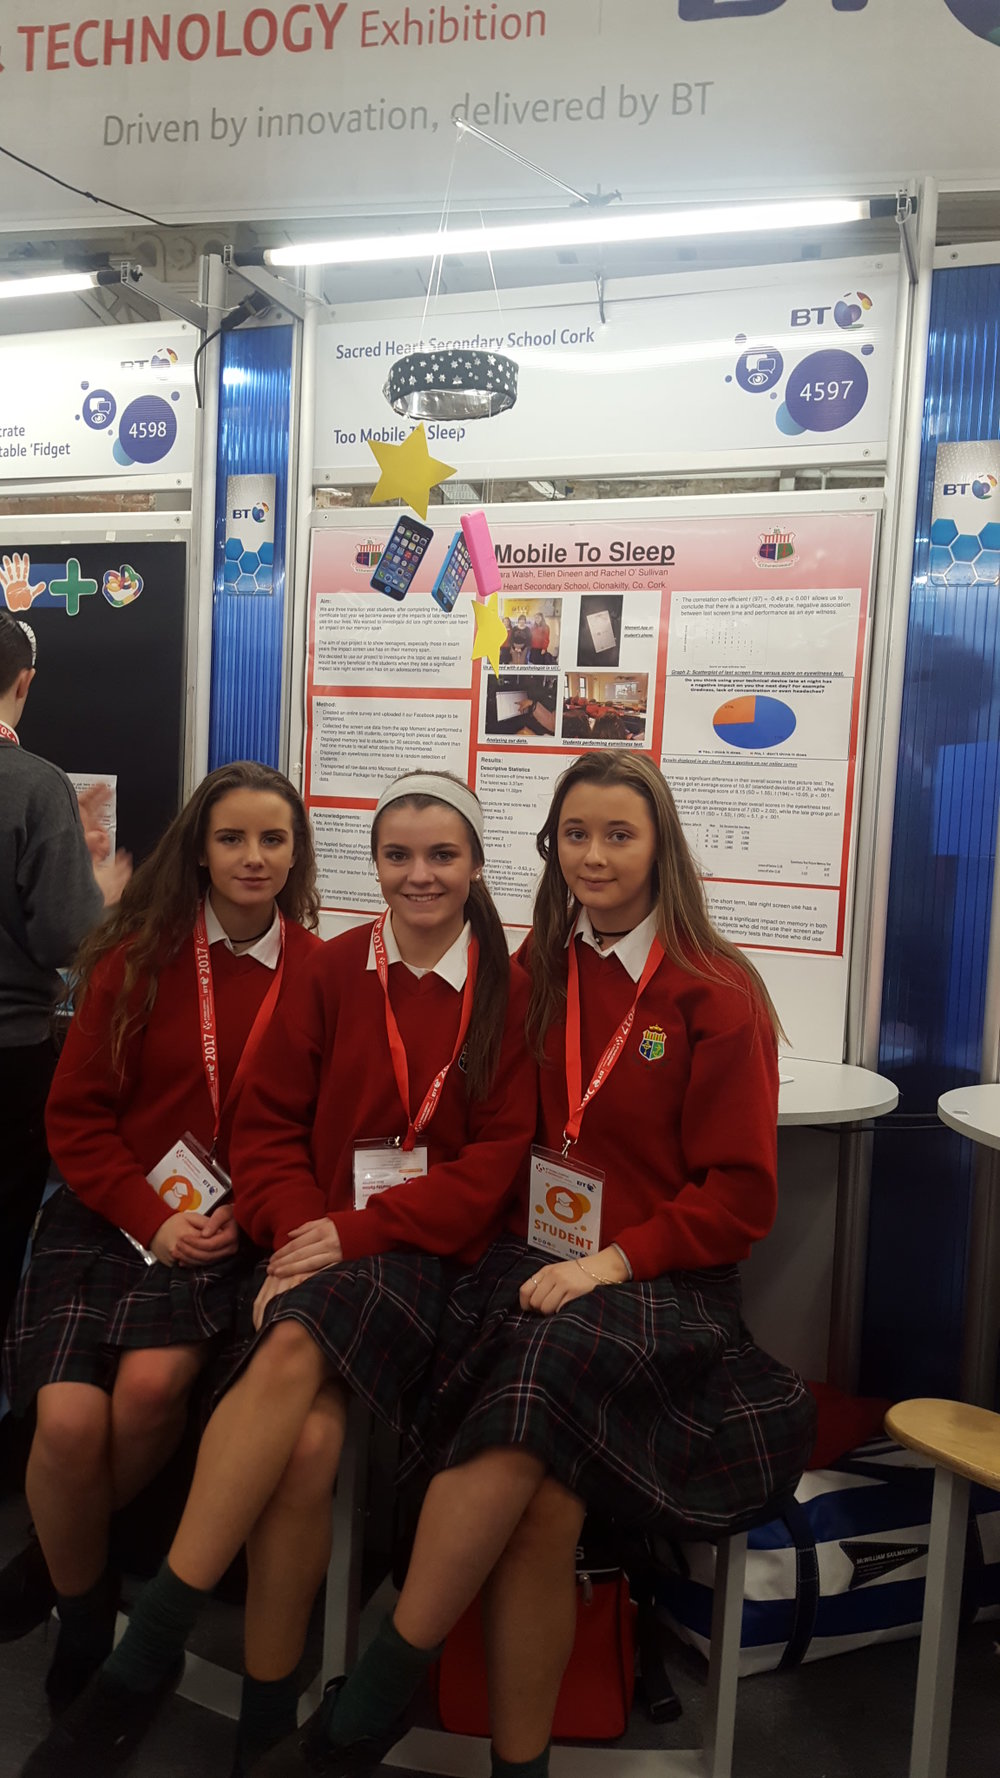 Group 2. Rachel O'Sullivan, Ellen Dineen and Ciara Walsh. Their project is an investigation into the effect late night screen use (tablets and mobile phones) has on your memory.